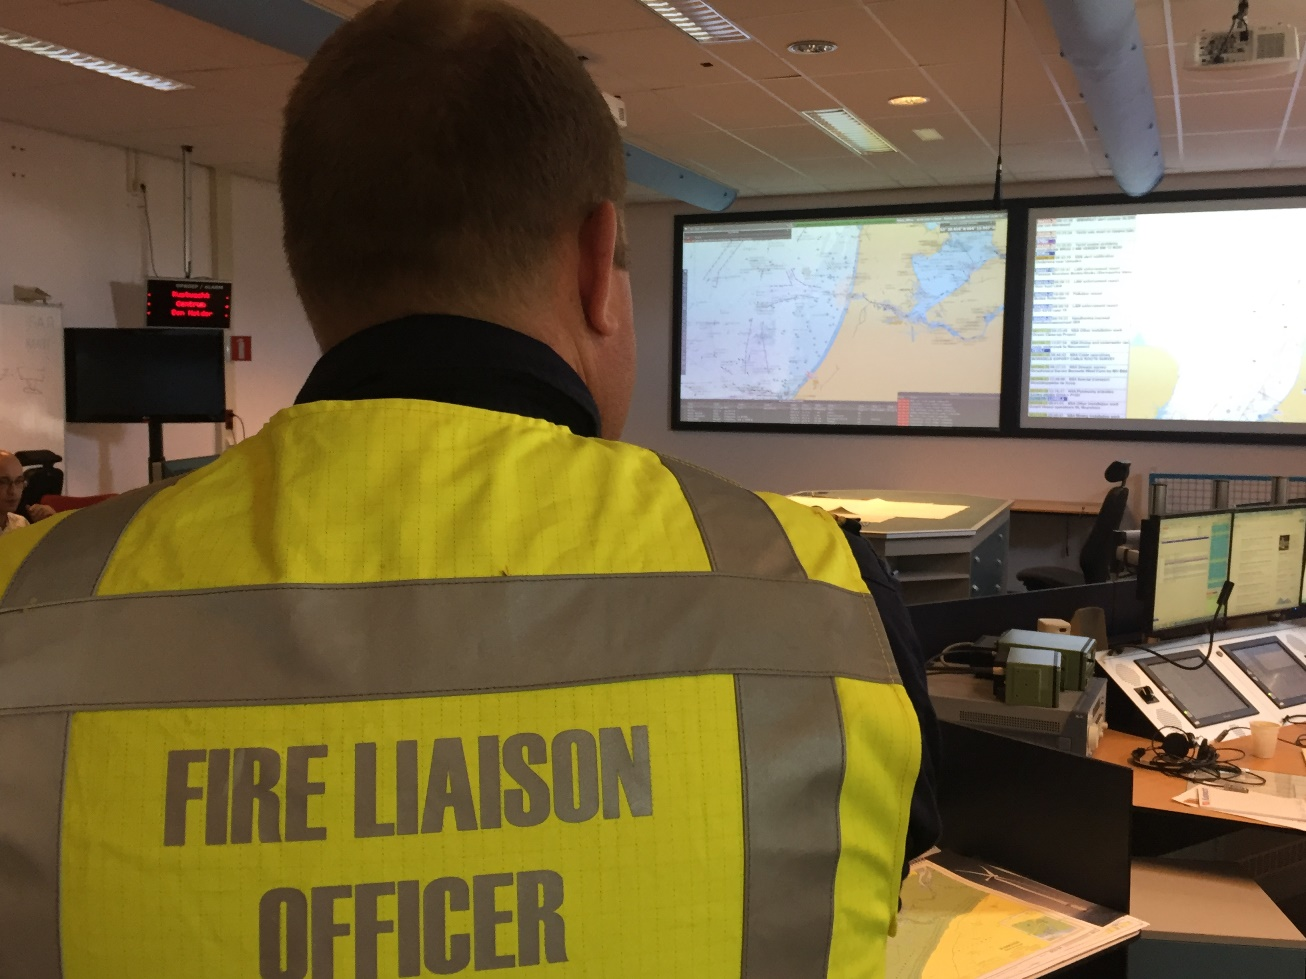 MIRG.nl Fire Liaison Officer (FLO)